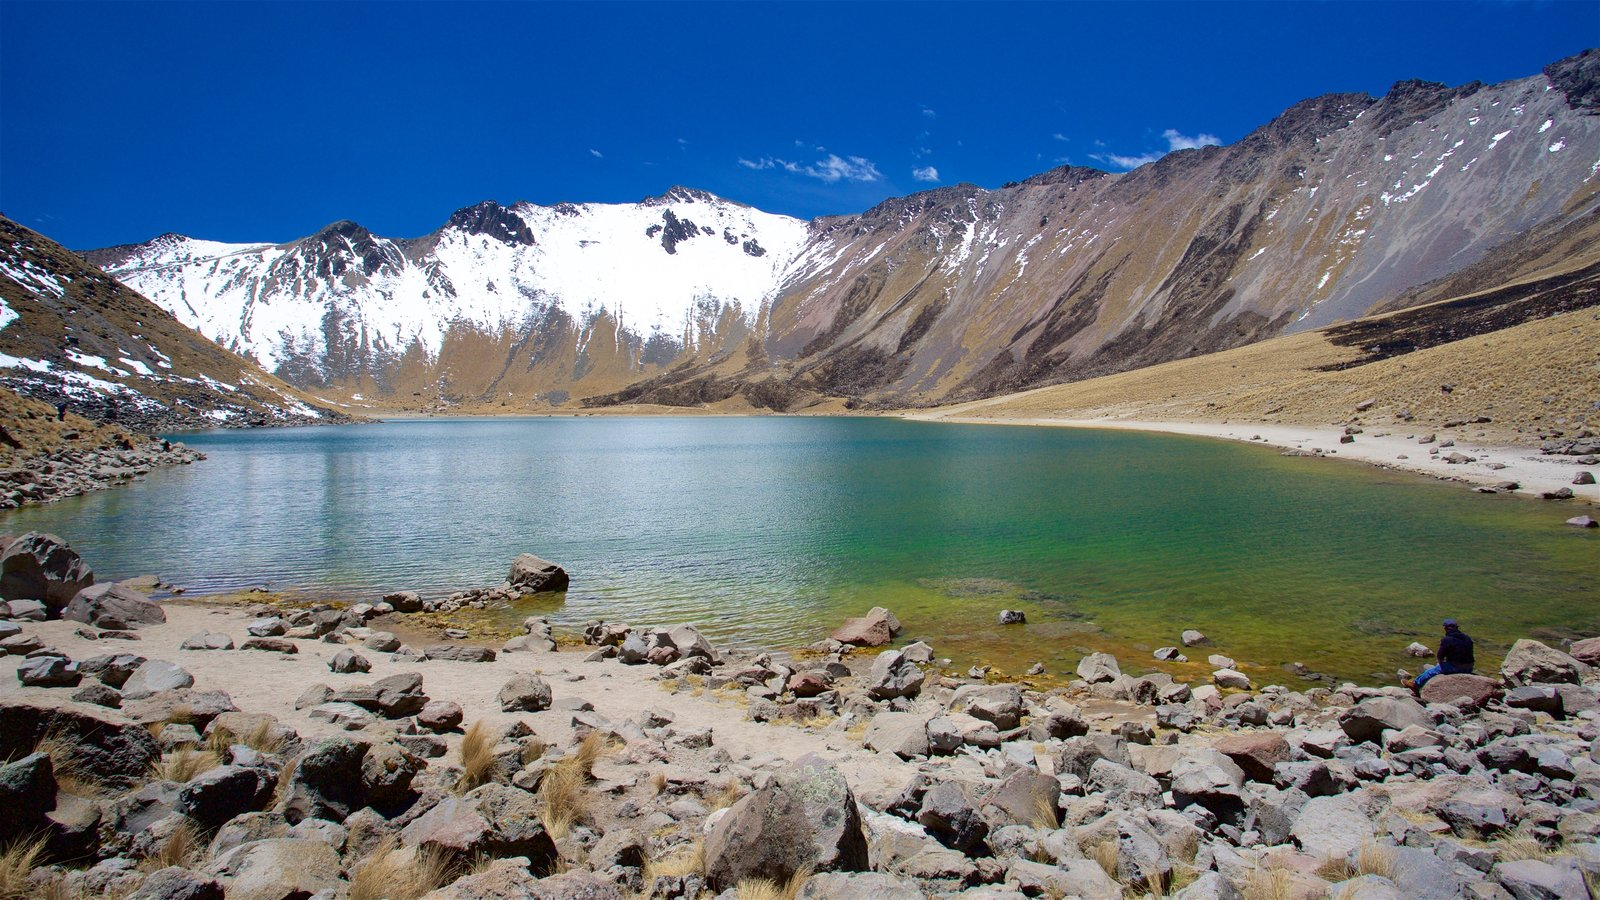 Nevado de Toluca National Park showing a lake or waterhole, mountains and snow